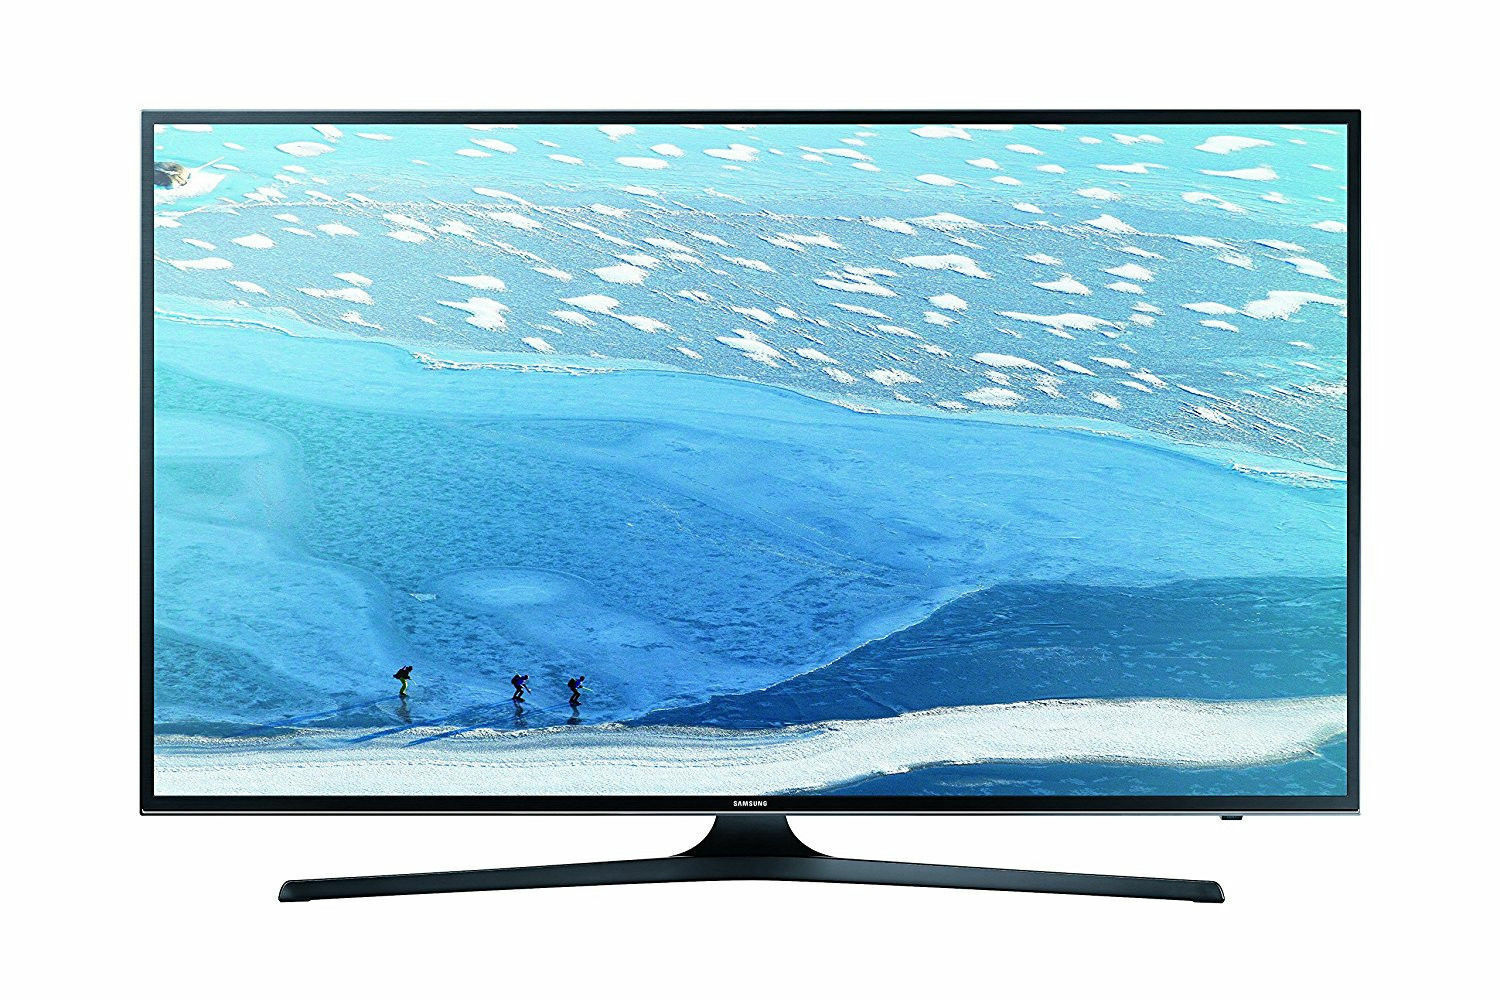 samsung ue70ku6079 led tv 176 cm 70 zoll uhd smart 4k ultra hd eur picclick de. Black Bedroom Furniture Sets. Home Design Ideas